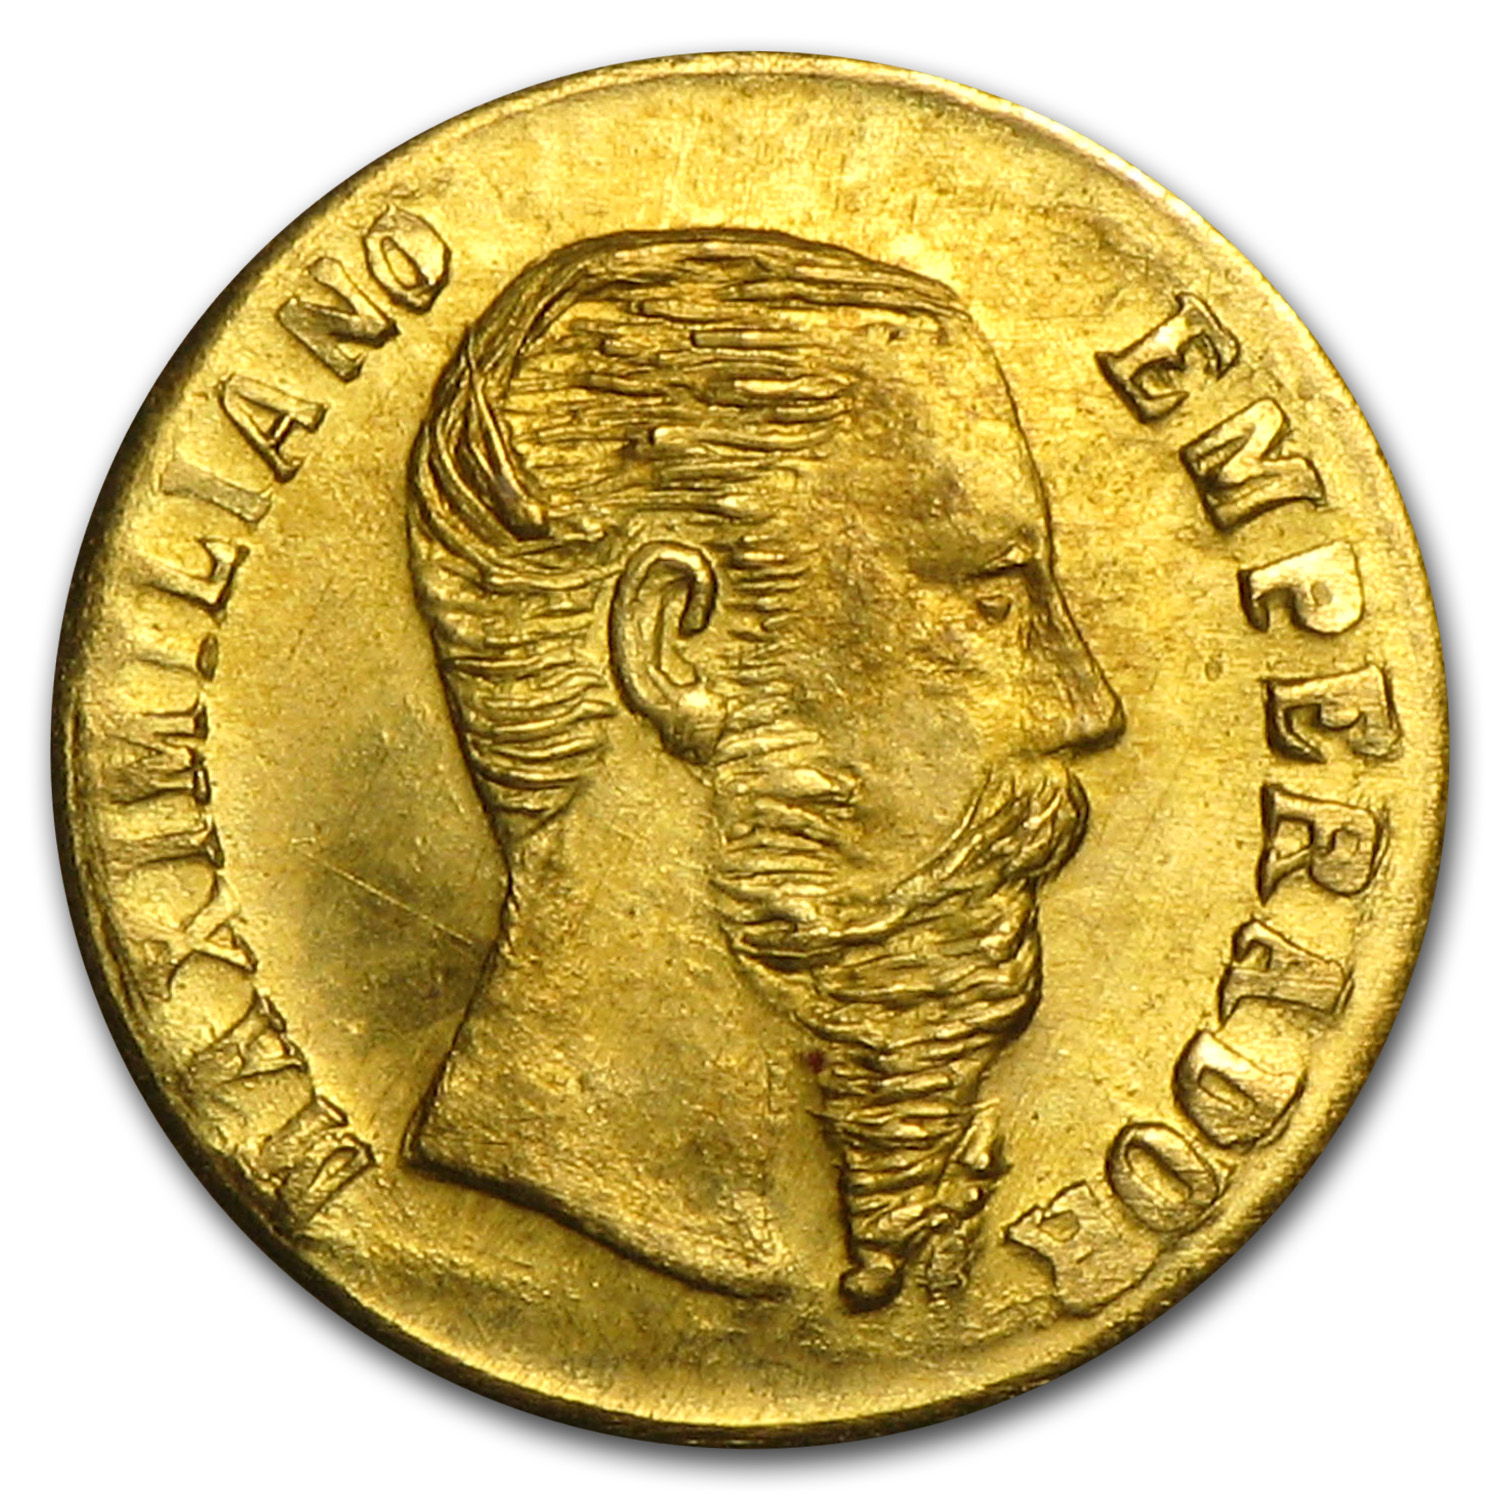 1865-B Mexican Mini Gold Coin Maximiliano Replica (11 mm)